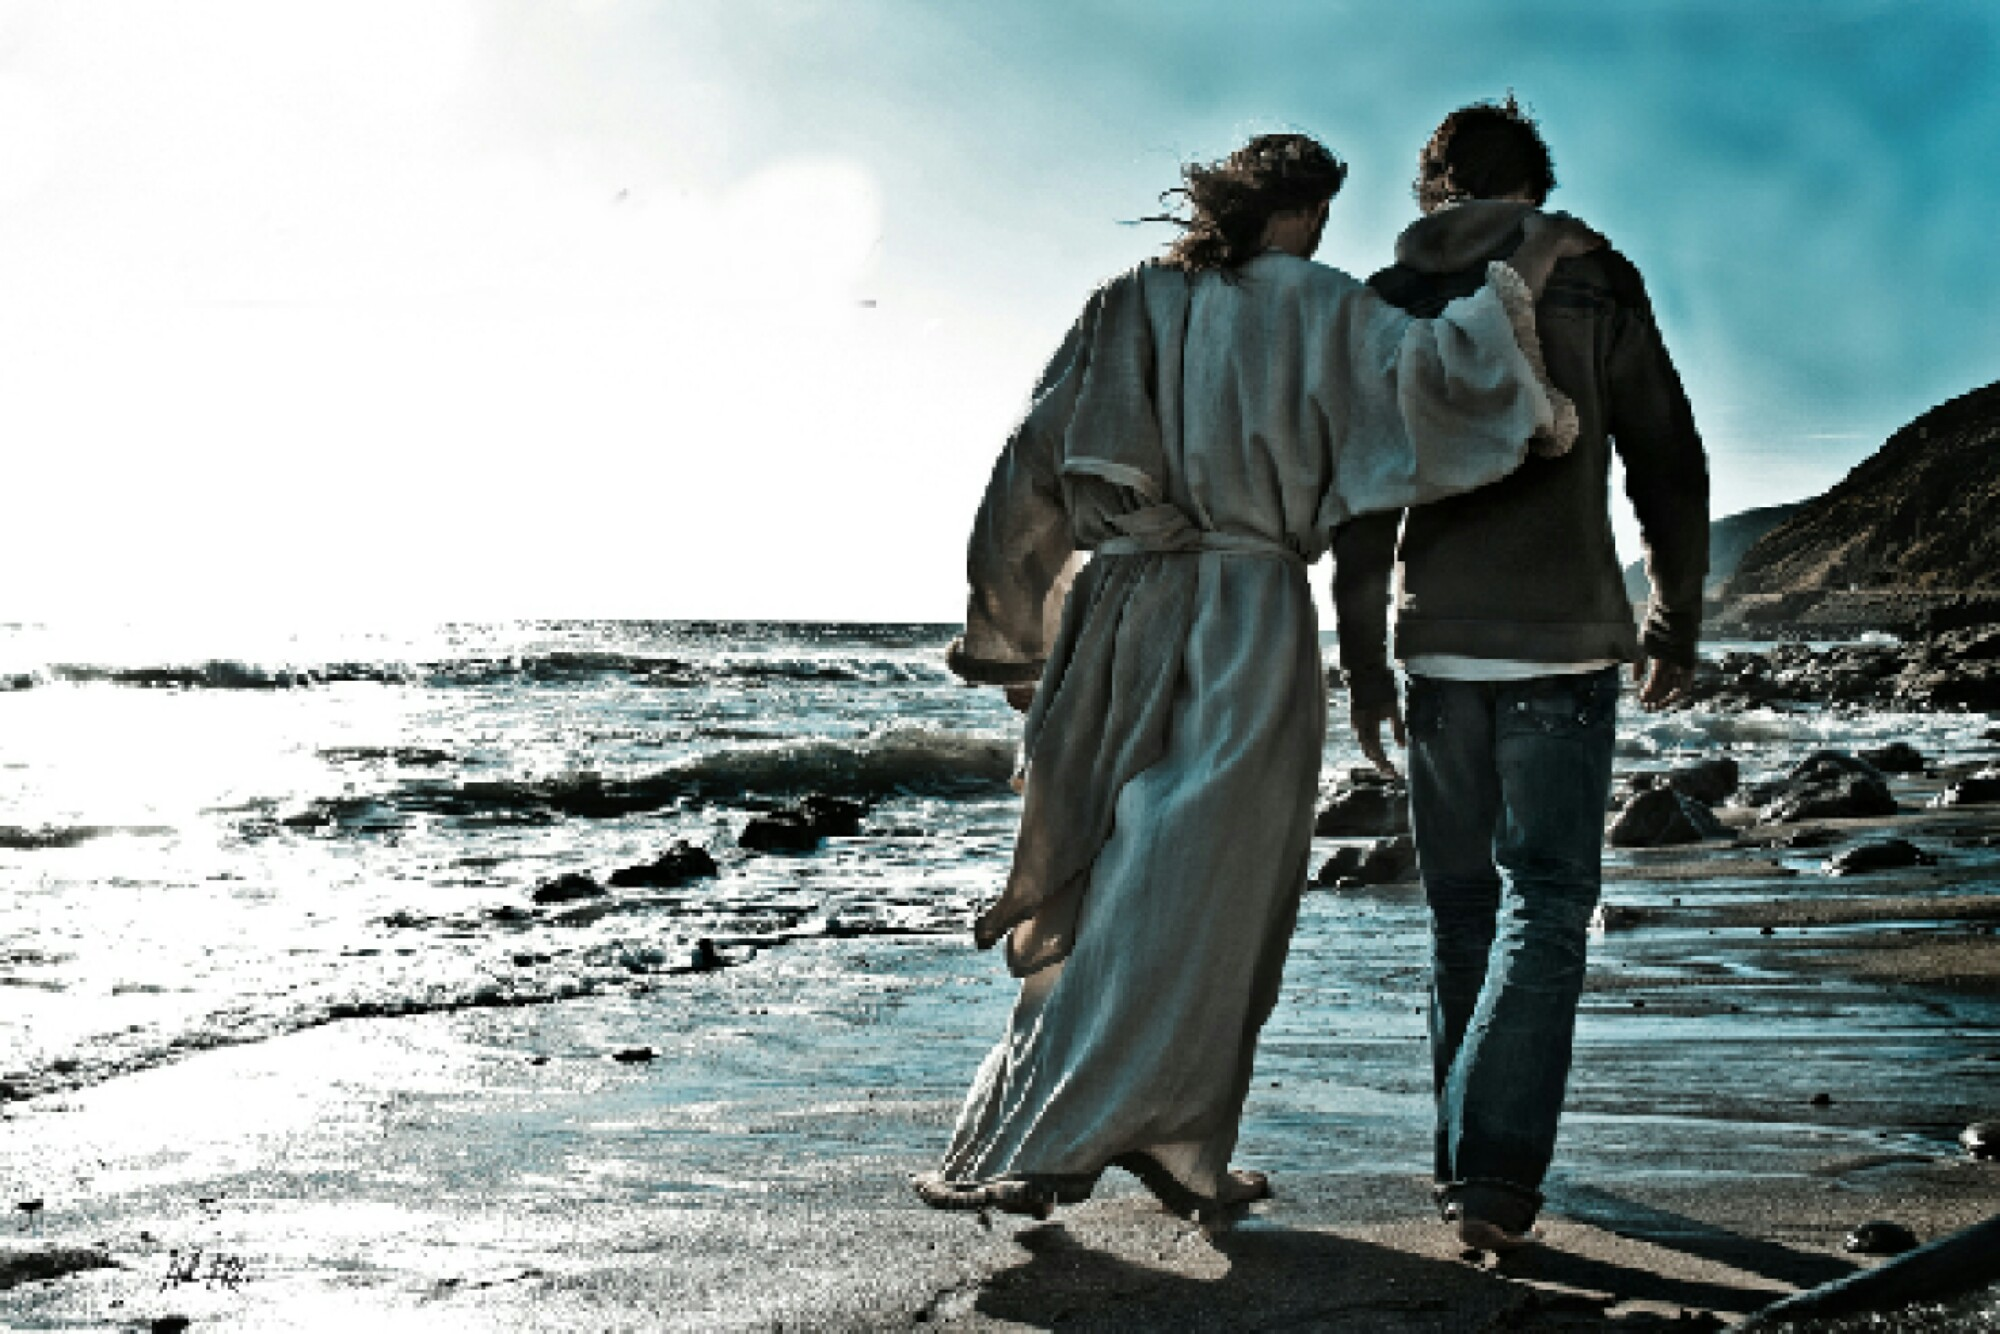 Jesus walking with young man